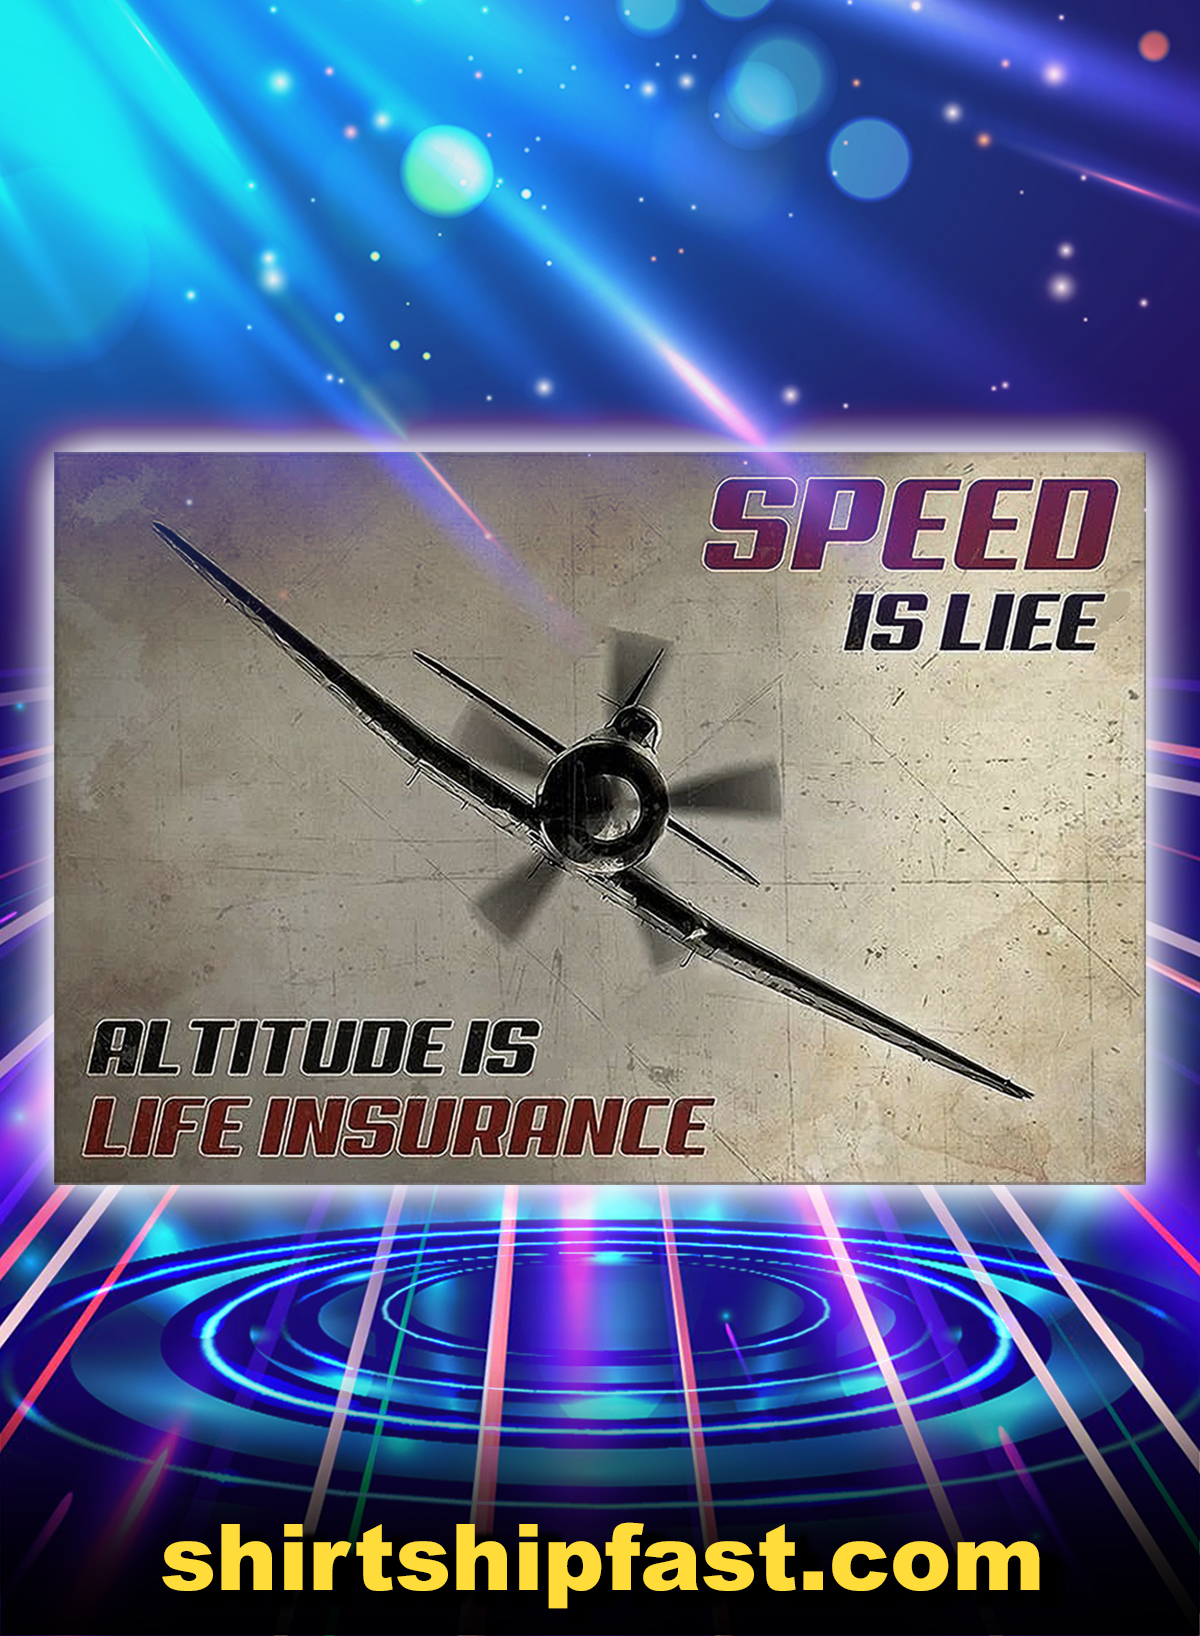 Pilot speed is life altitude is life insurance poster - A1